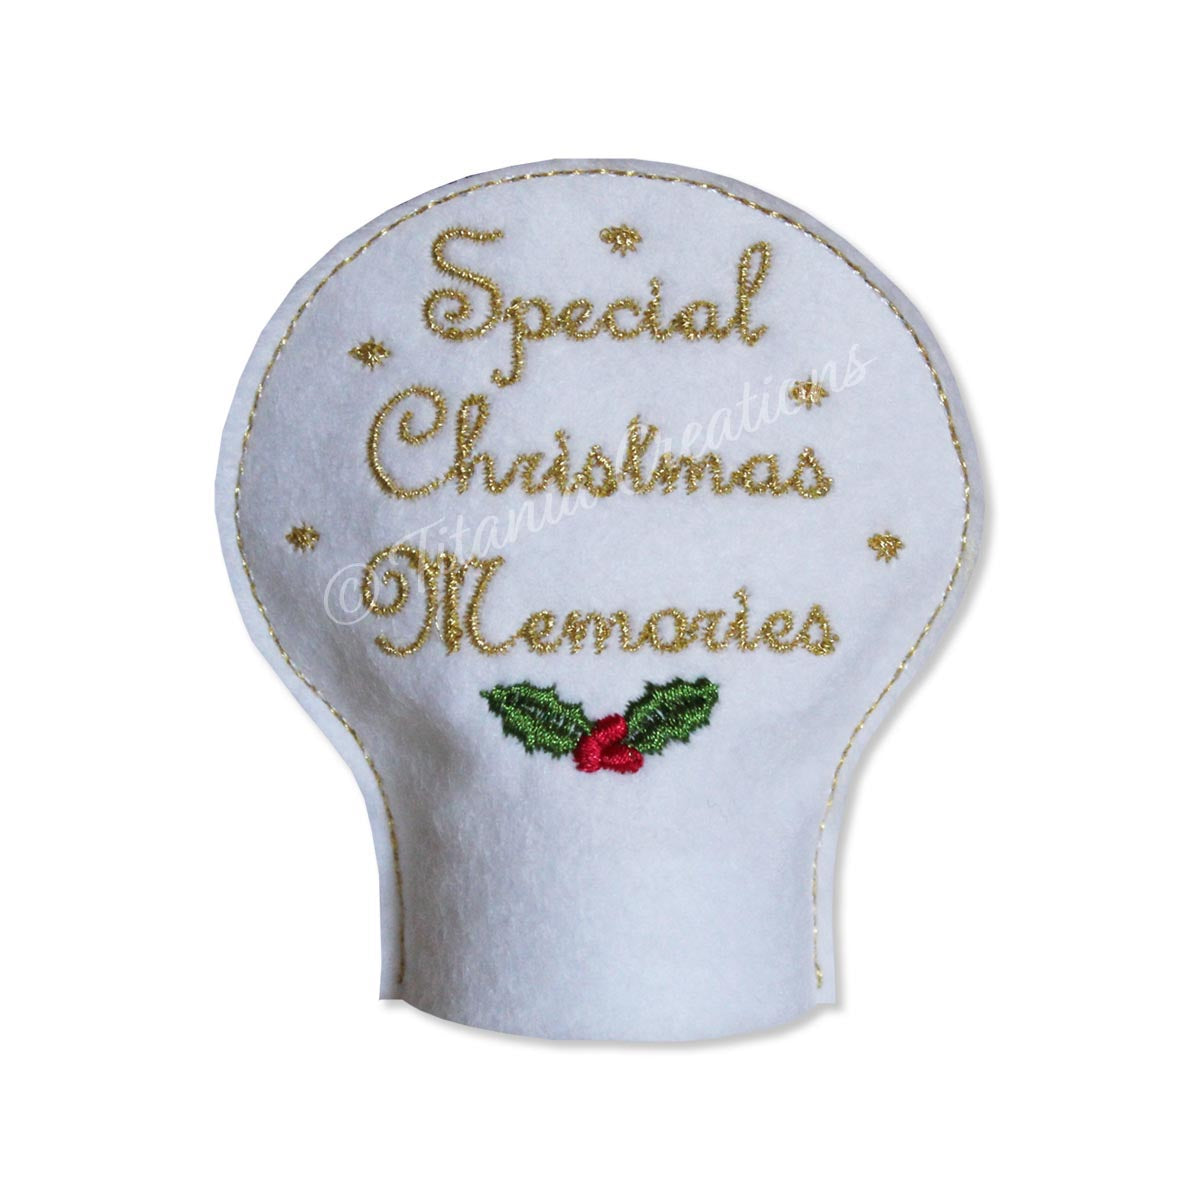 ITH Christmas Memories Tea Light Cover 4x4